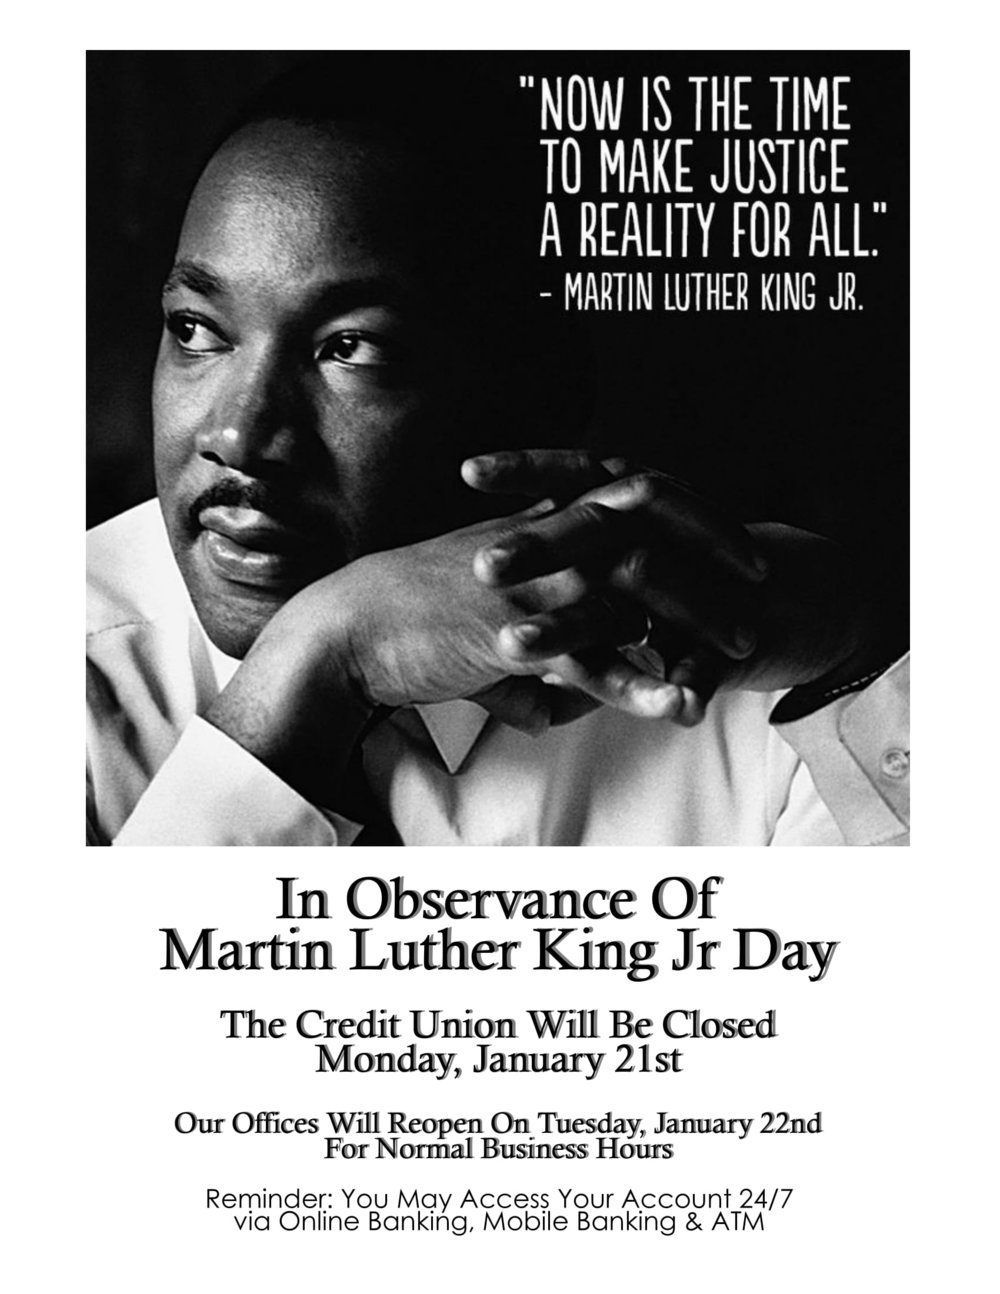 Martin Luther King Jr, Now is the time to make justice a reality for all.